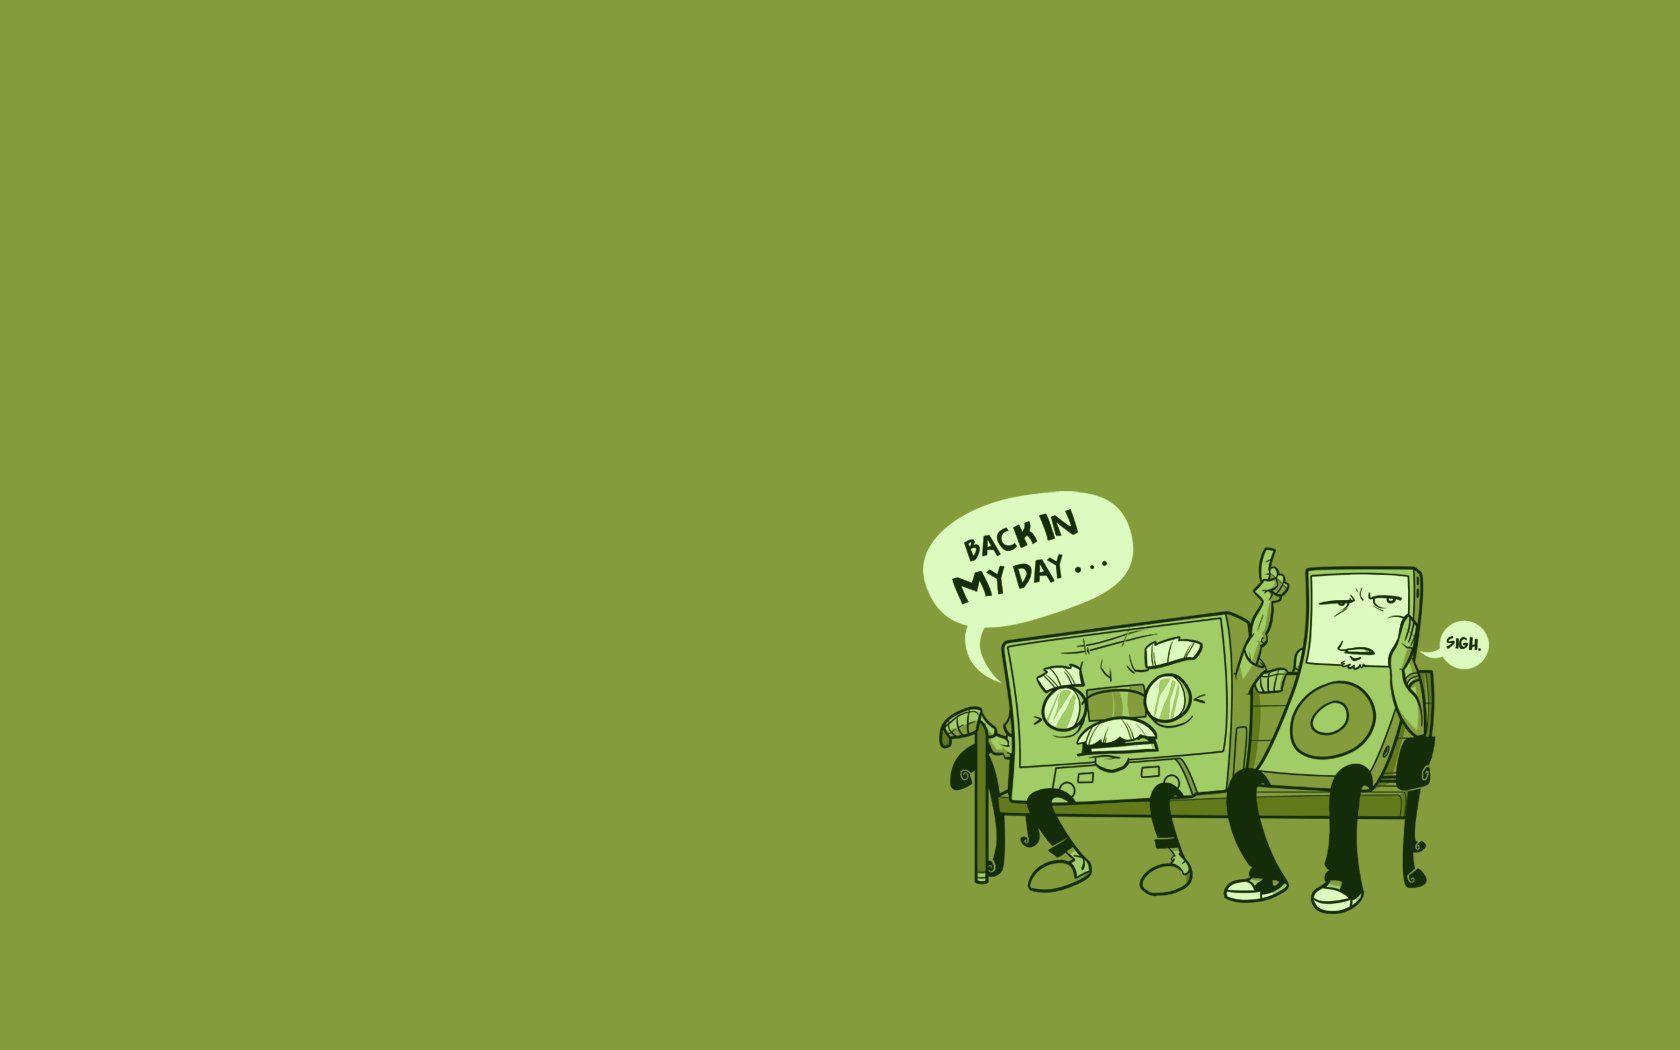 Funny-Image-HD-Wallpaper-5 - Just Another Entertainment Source :